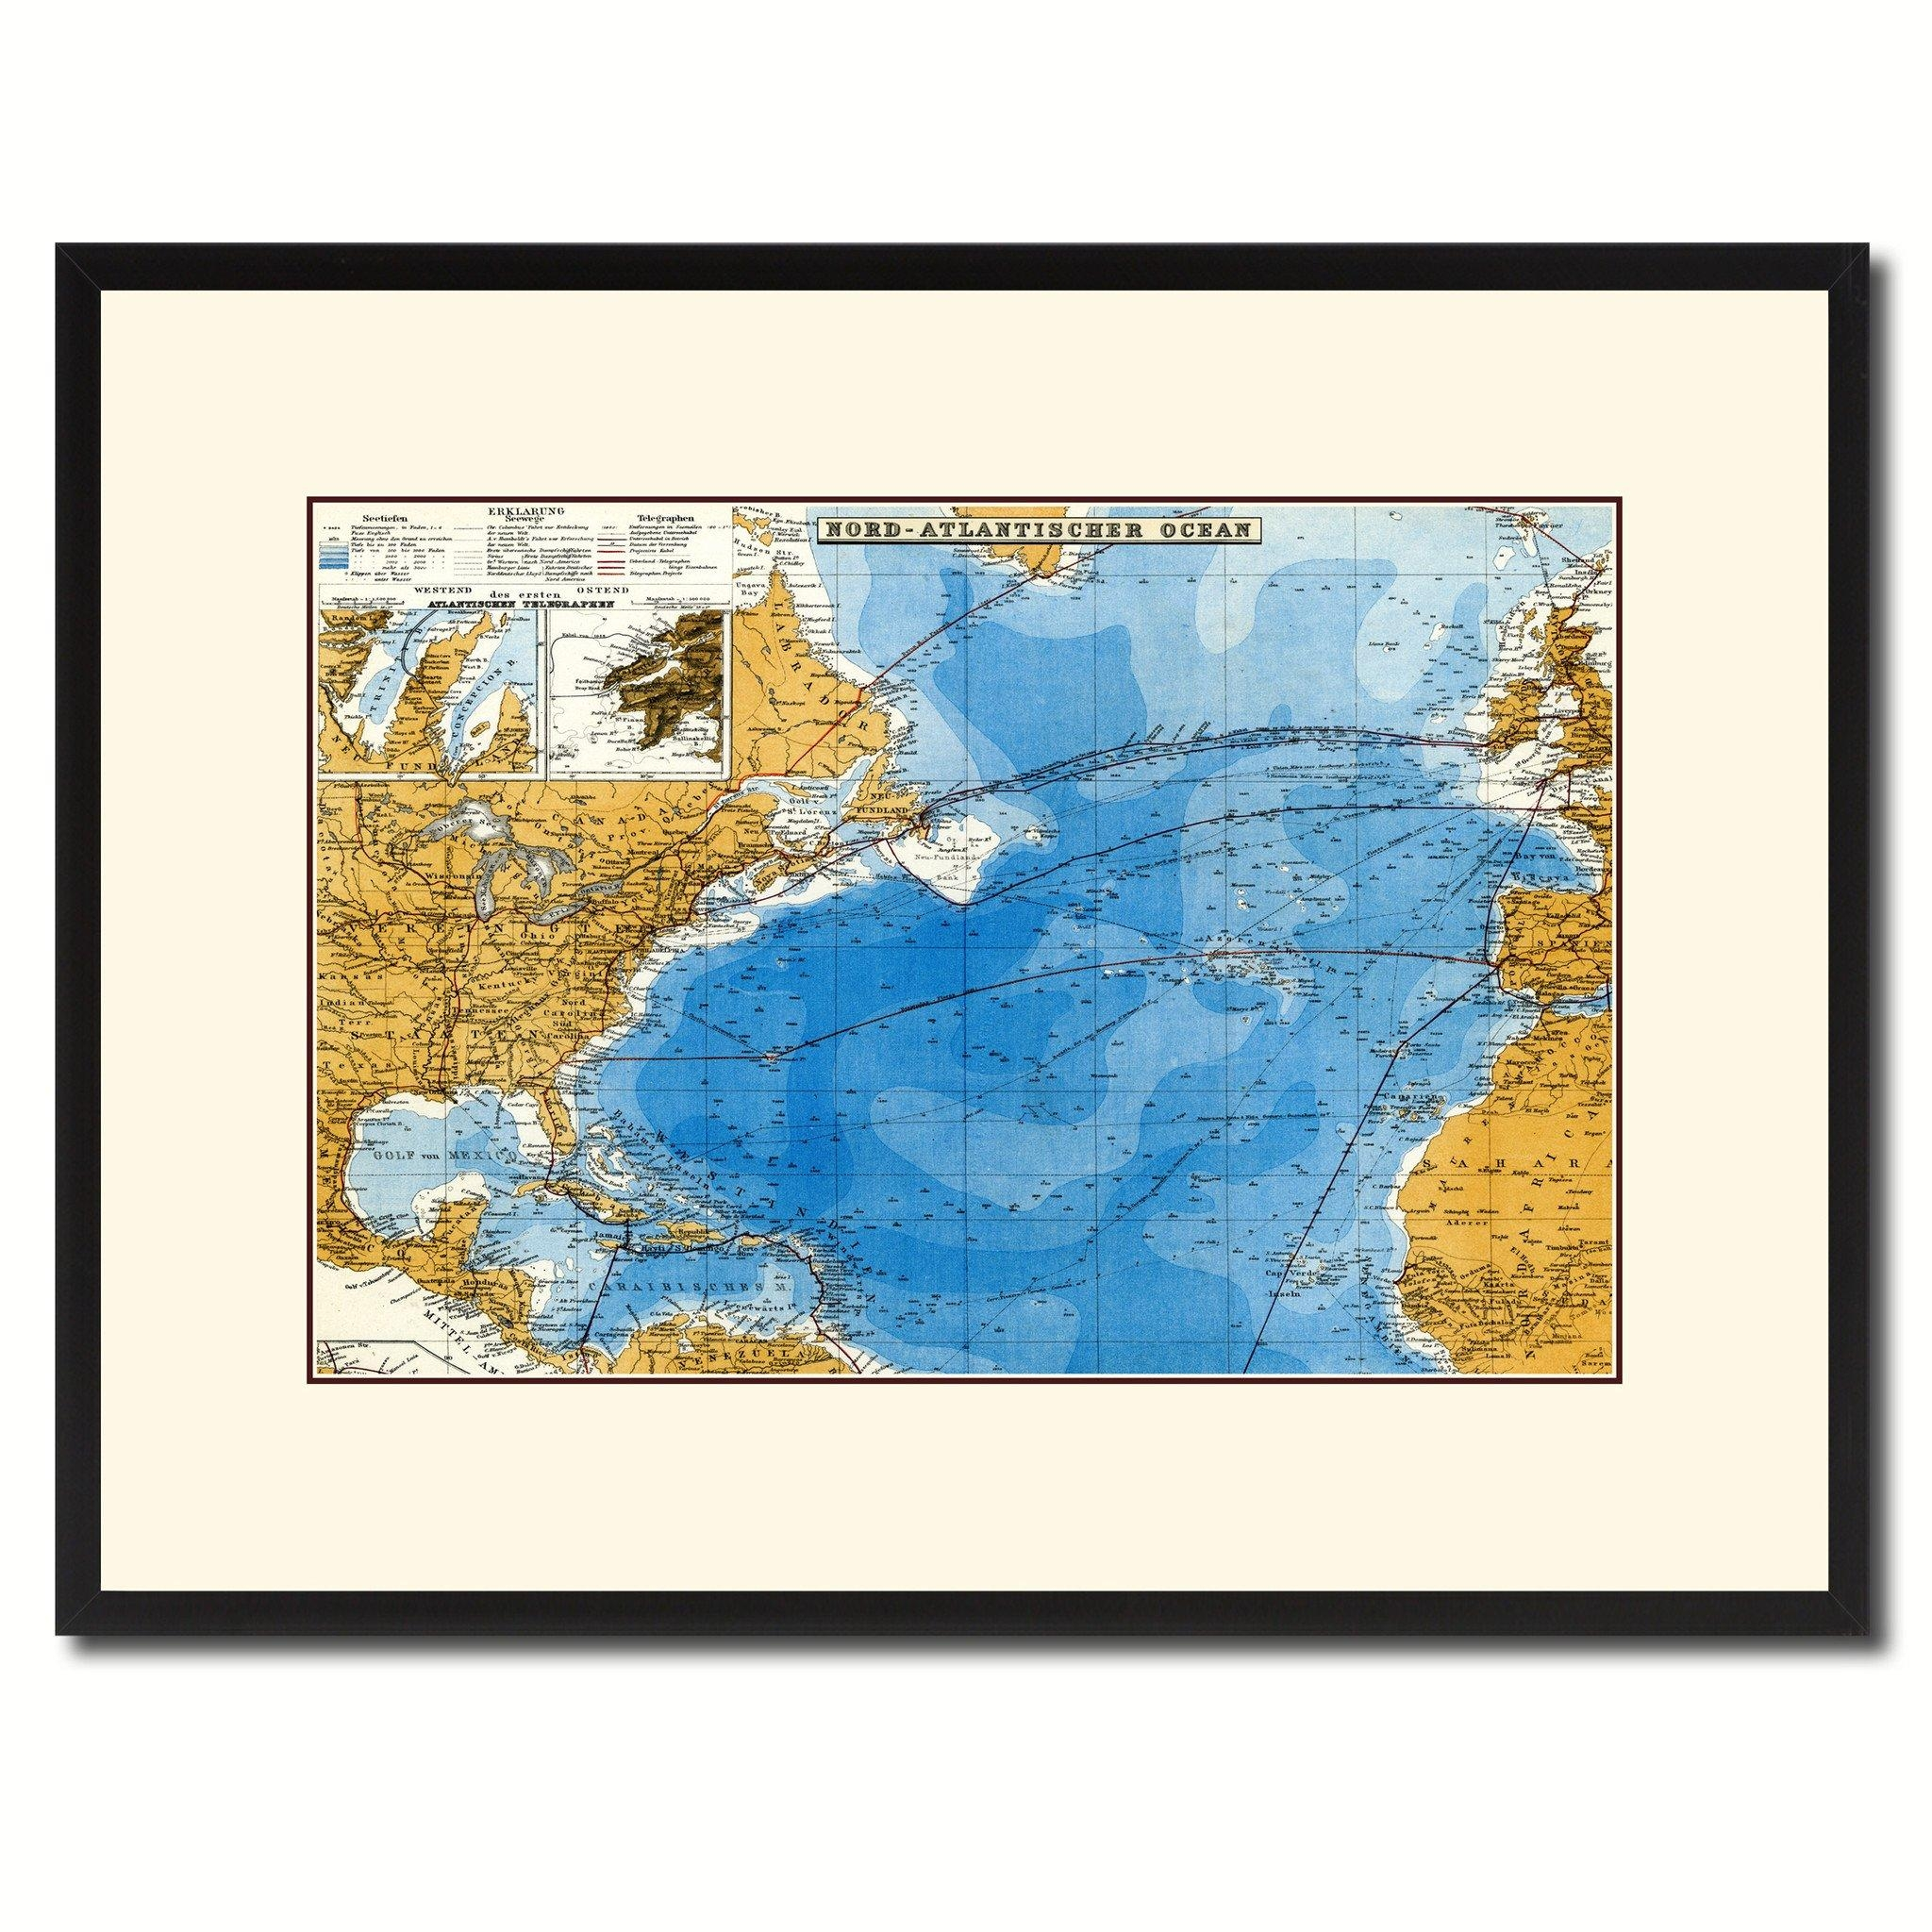 North Atlantic Telegraph Lines Stieler Vintage Antique Map Wall Throughout Vintage Map Wall Art (Image 12 of 20)